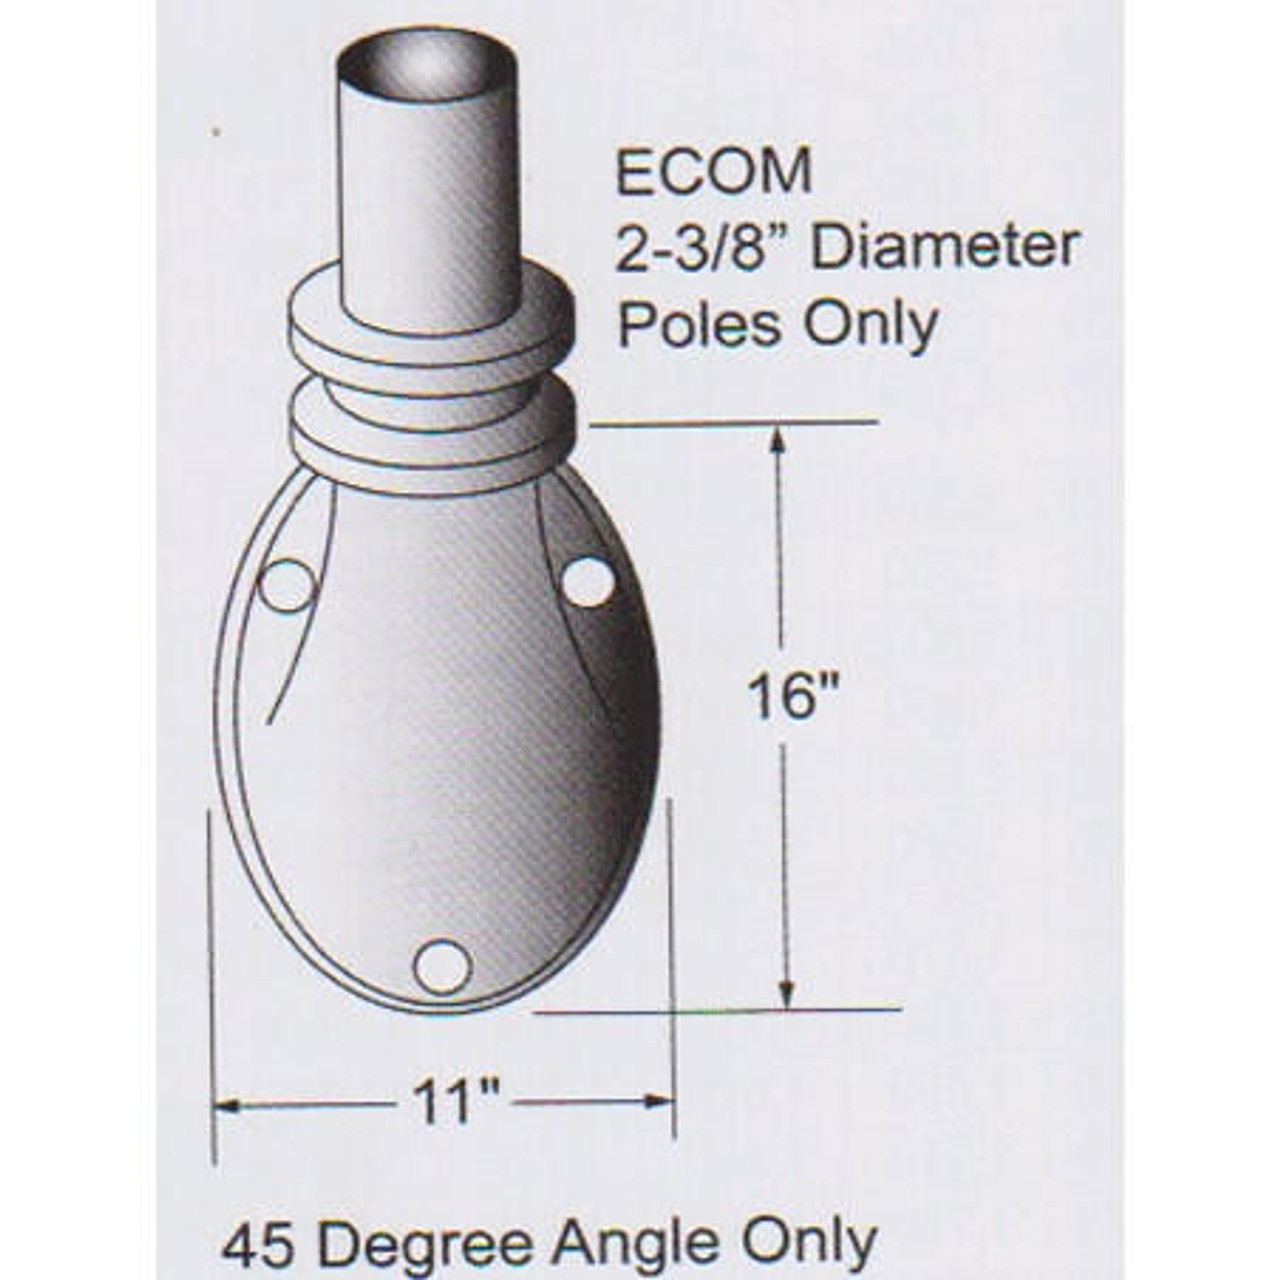 12 Tapered Wall Mounted Flagpole ECOM12 - Wall Mount